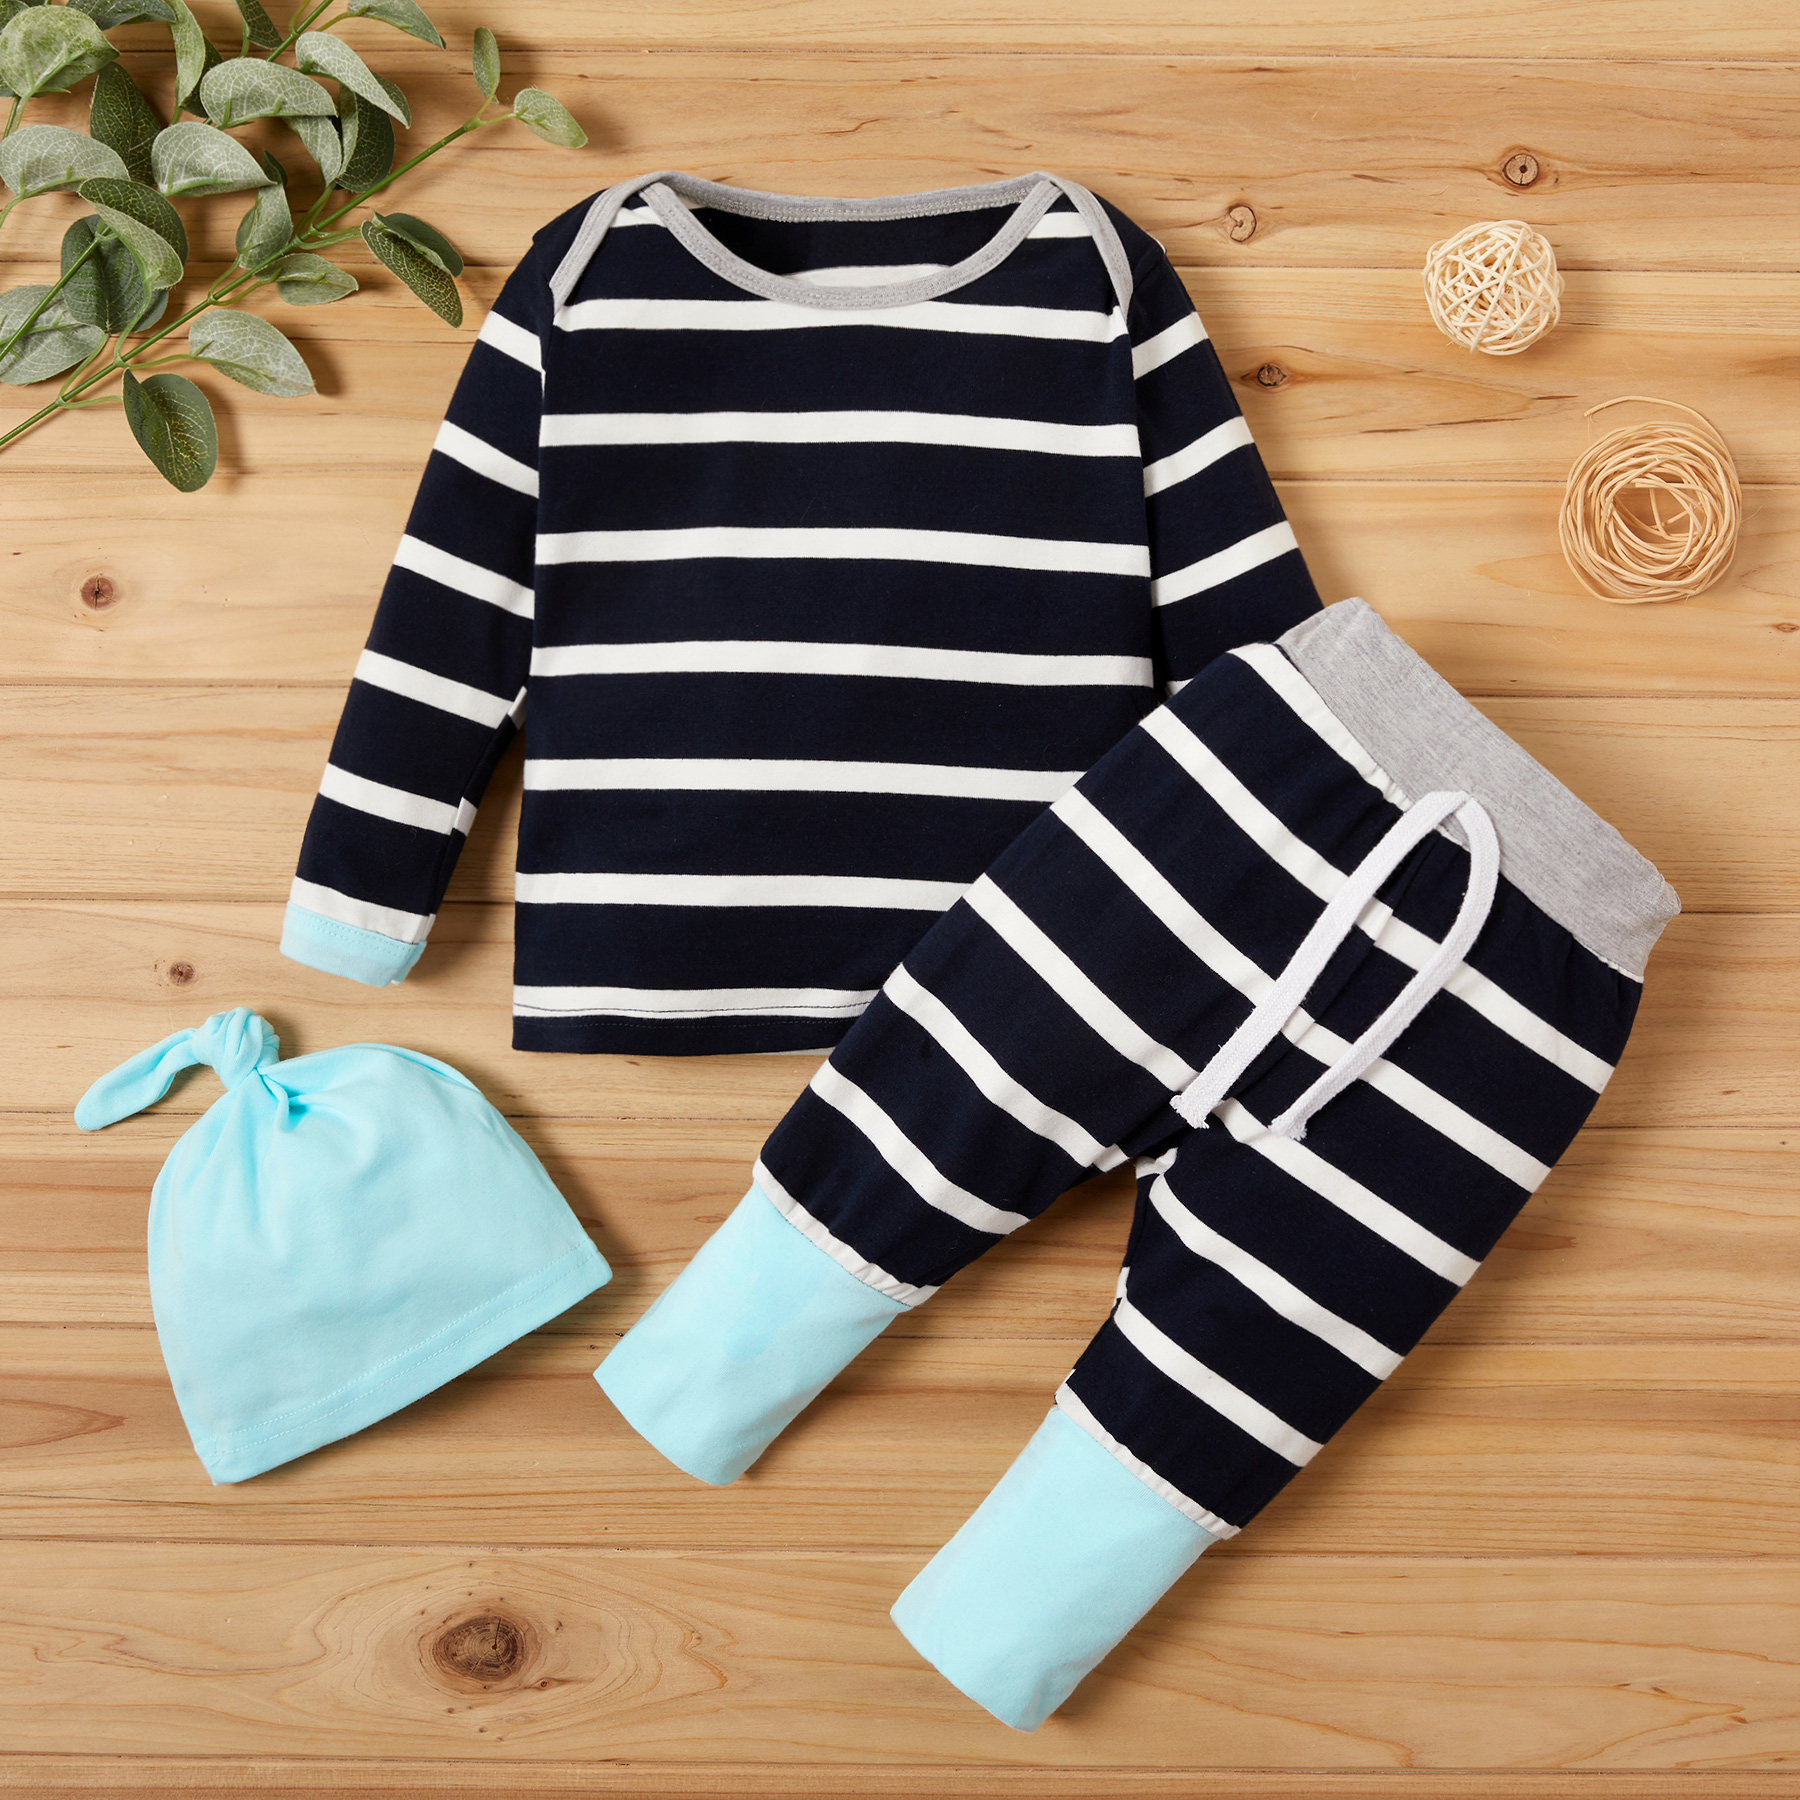 PatPat 2020 New Spring And Autumn 3-piece Striped Long-sleeve Top And Pants Set Baby Clothes